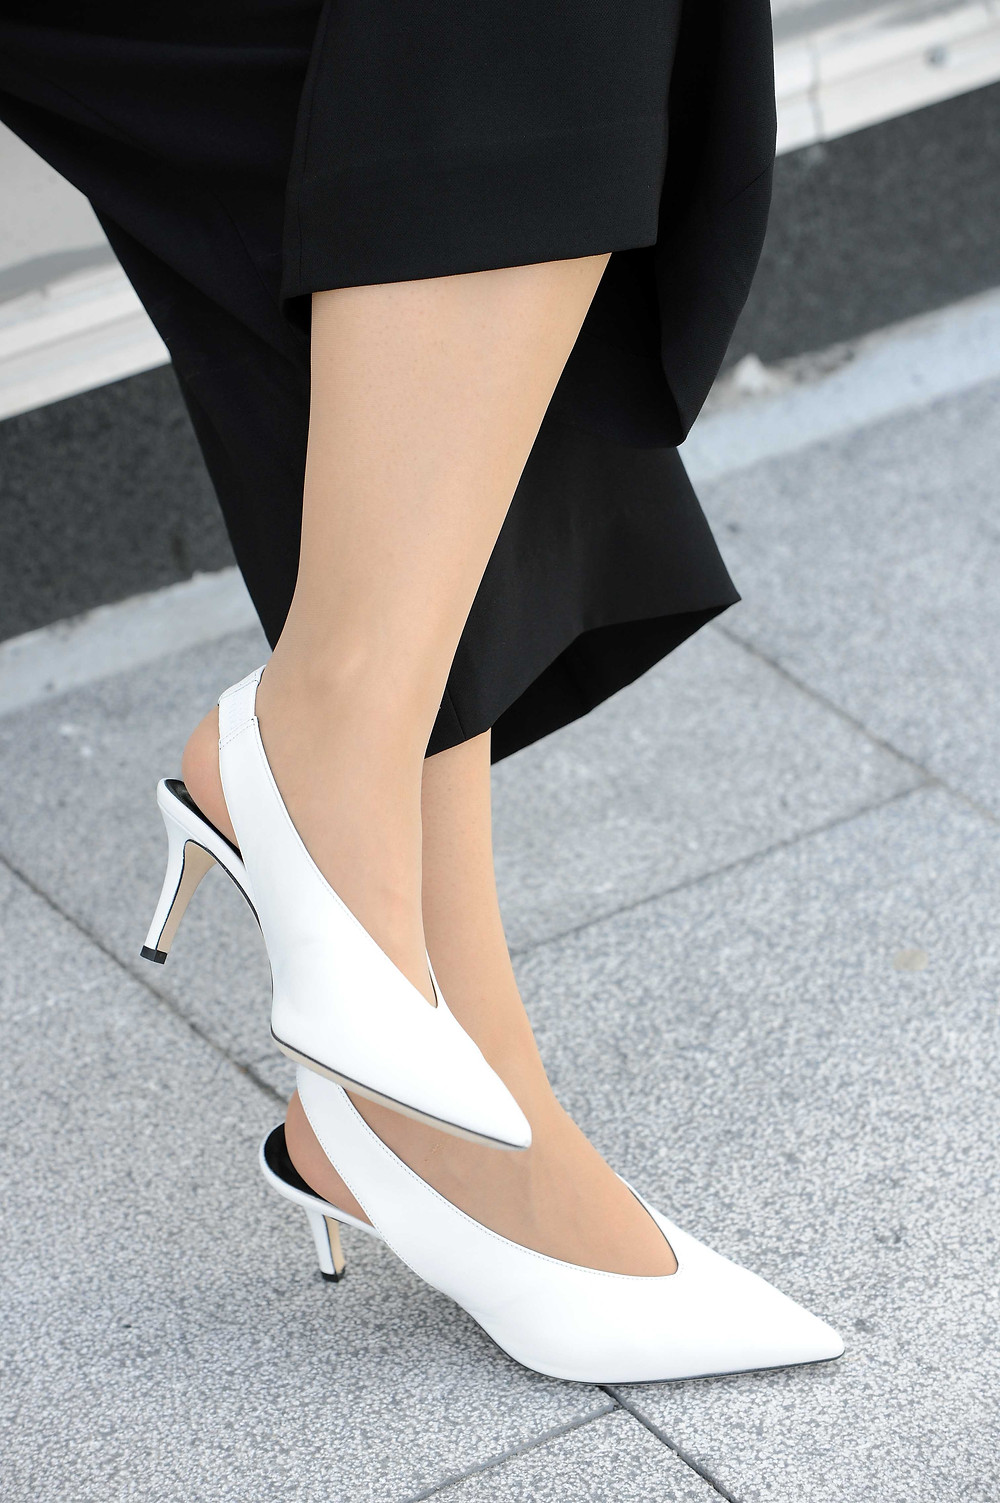 The Atto white leather sling-back pumps from M. Gemi